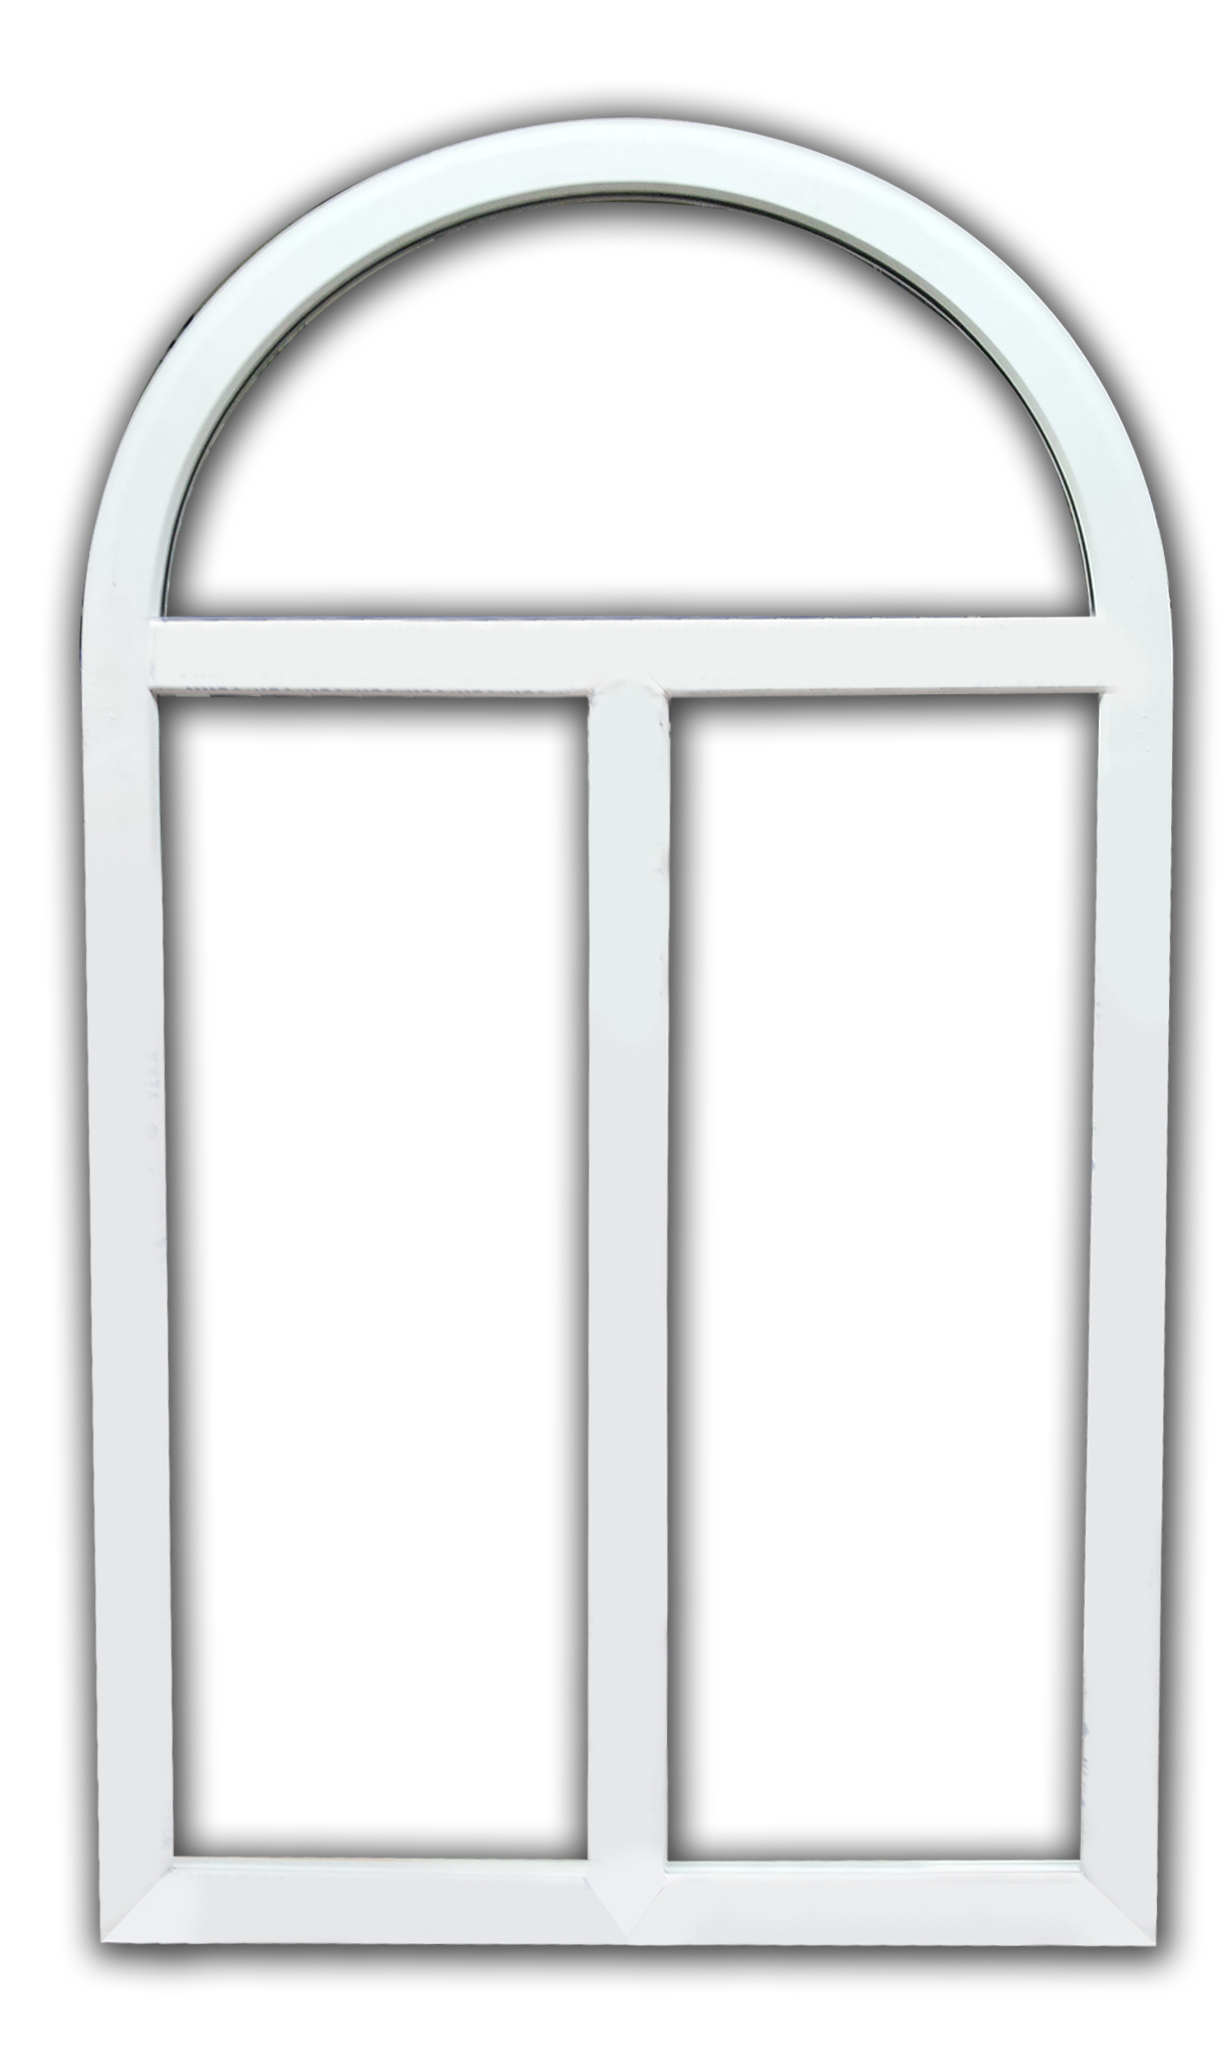 Round windows png. Arched window frame transparent